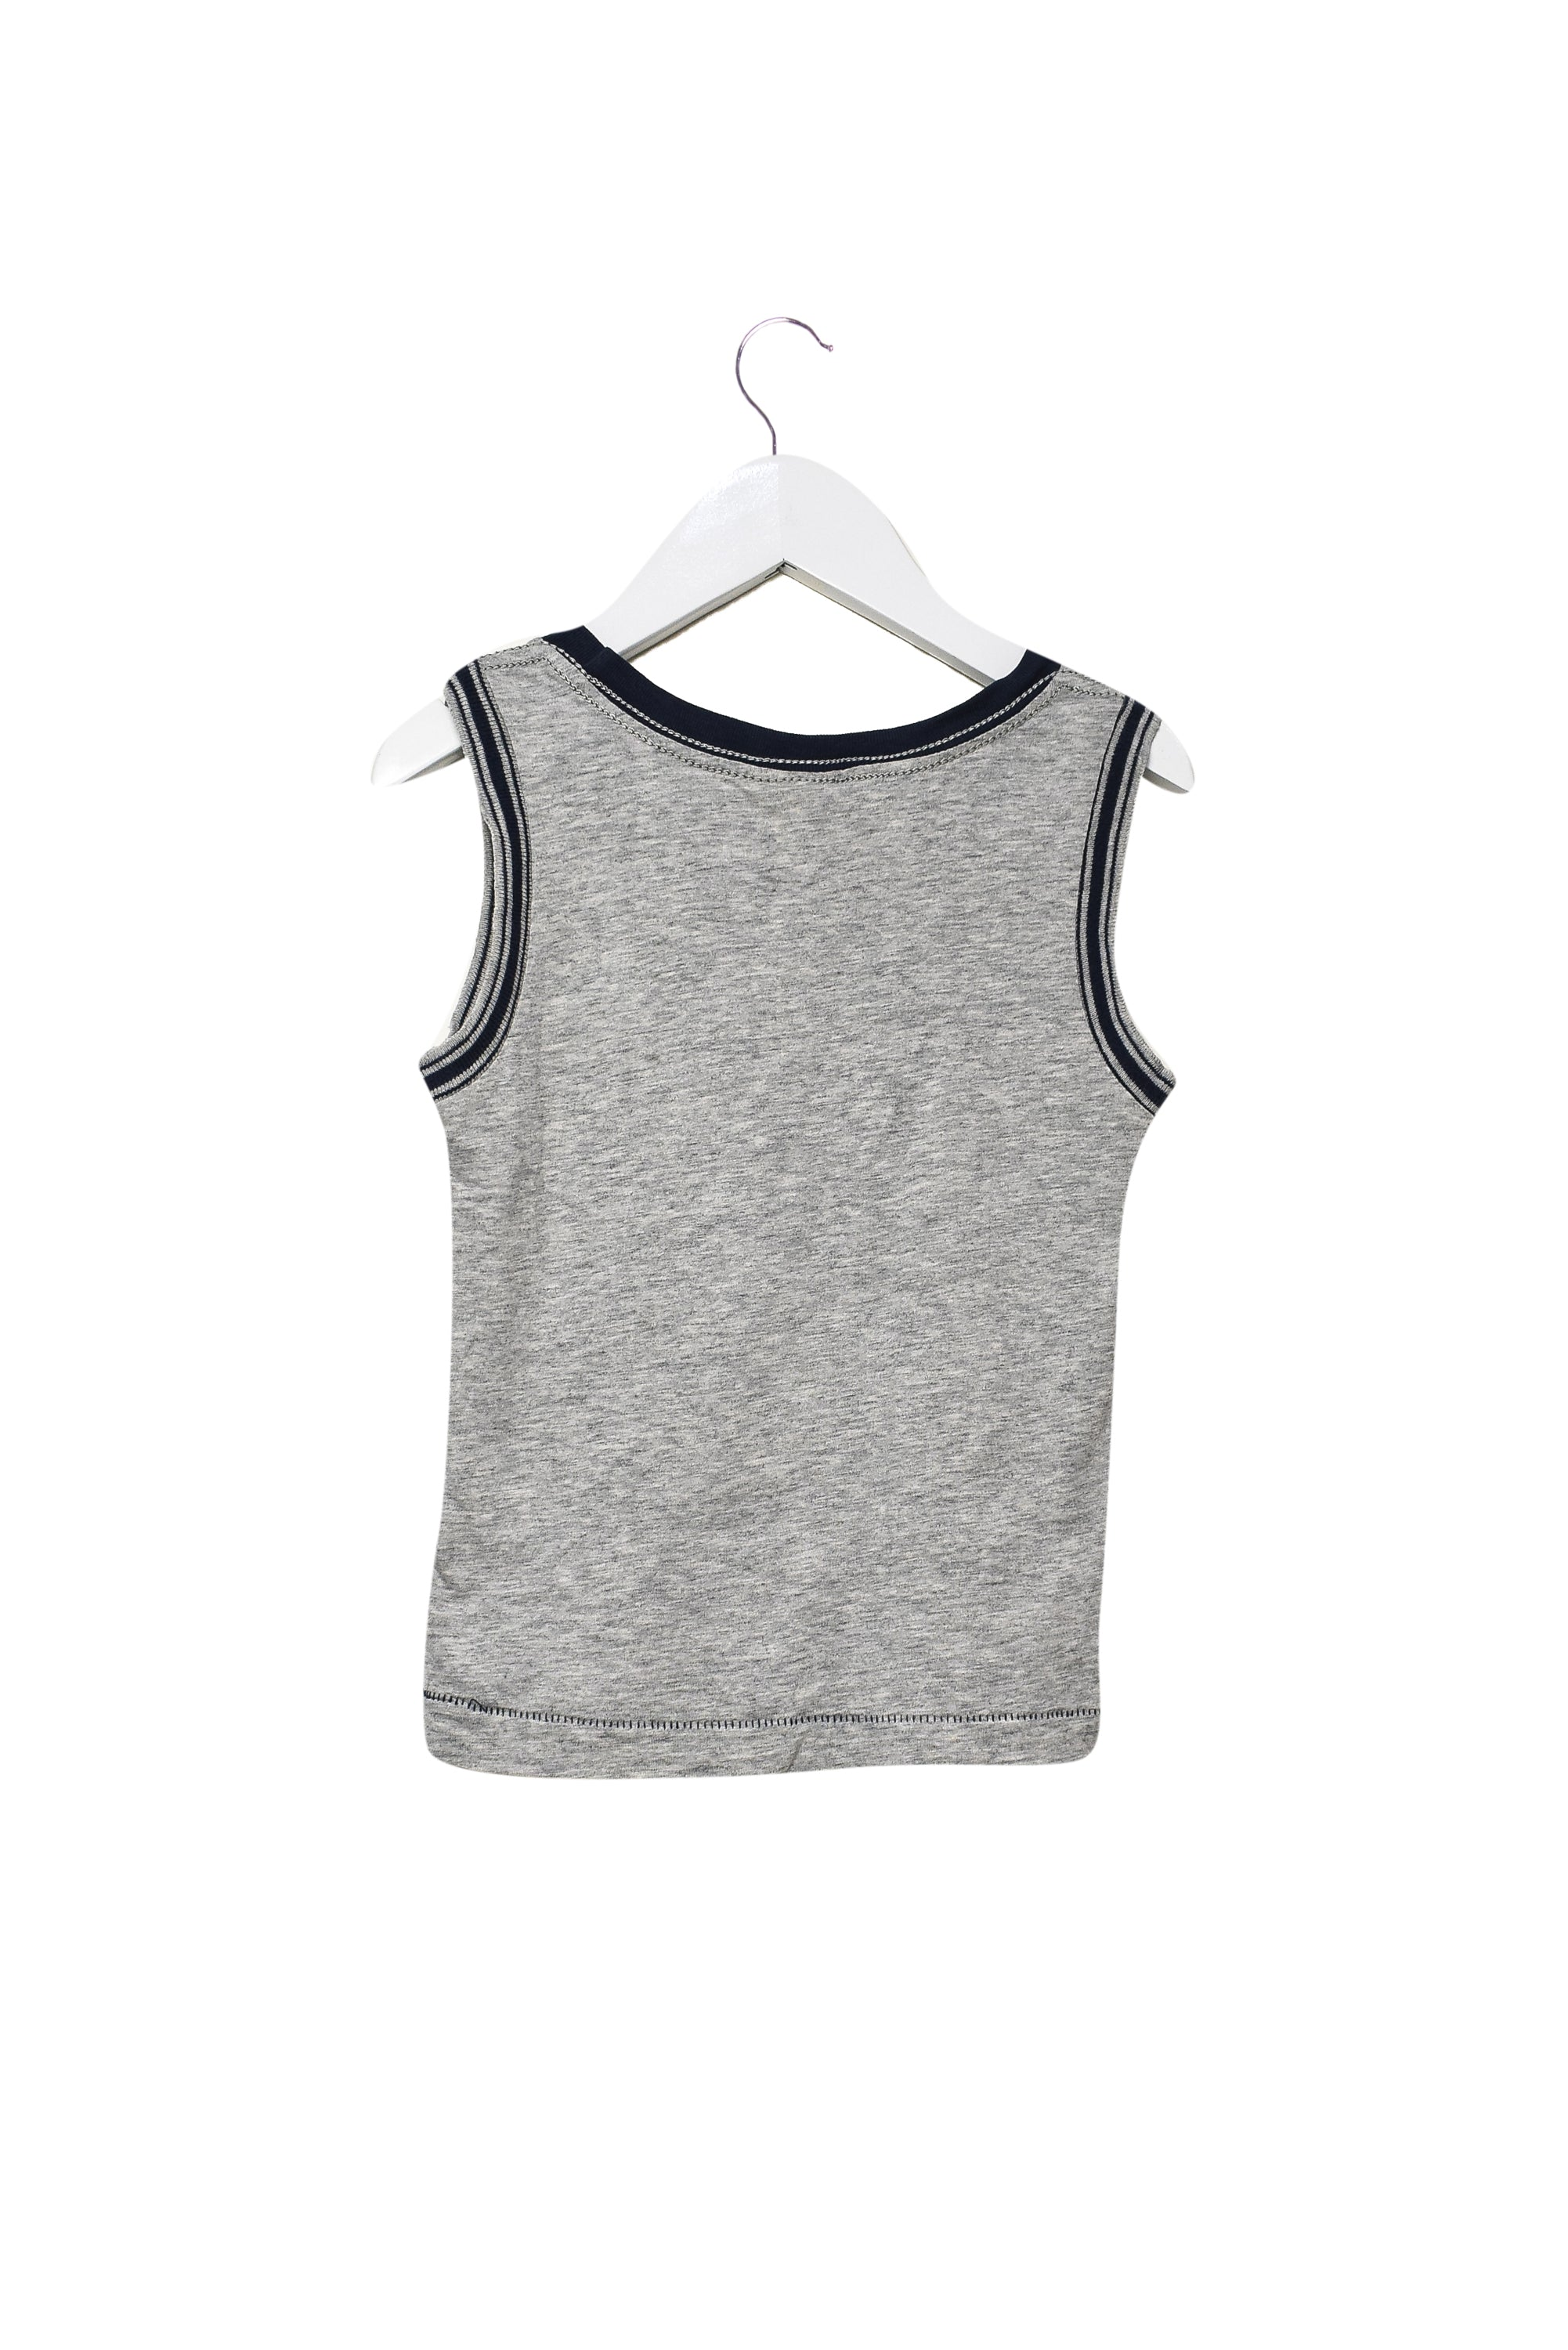 10045923 Diesel Kids~ Sleeveless Top 4-5T at Retykle